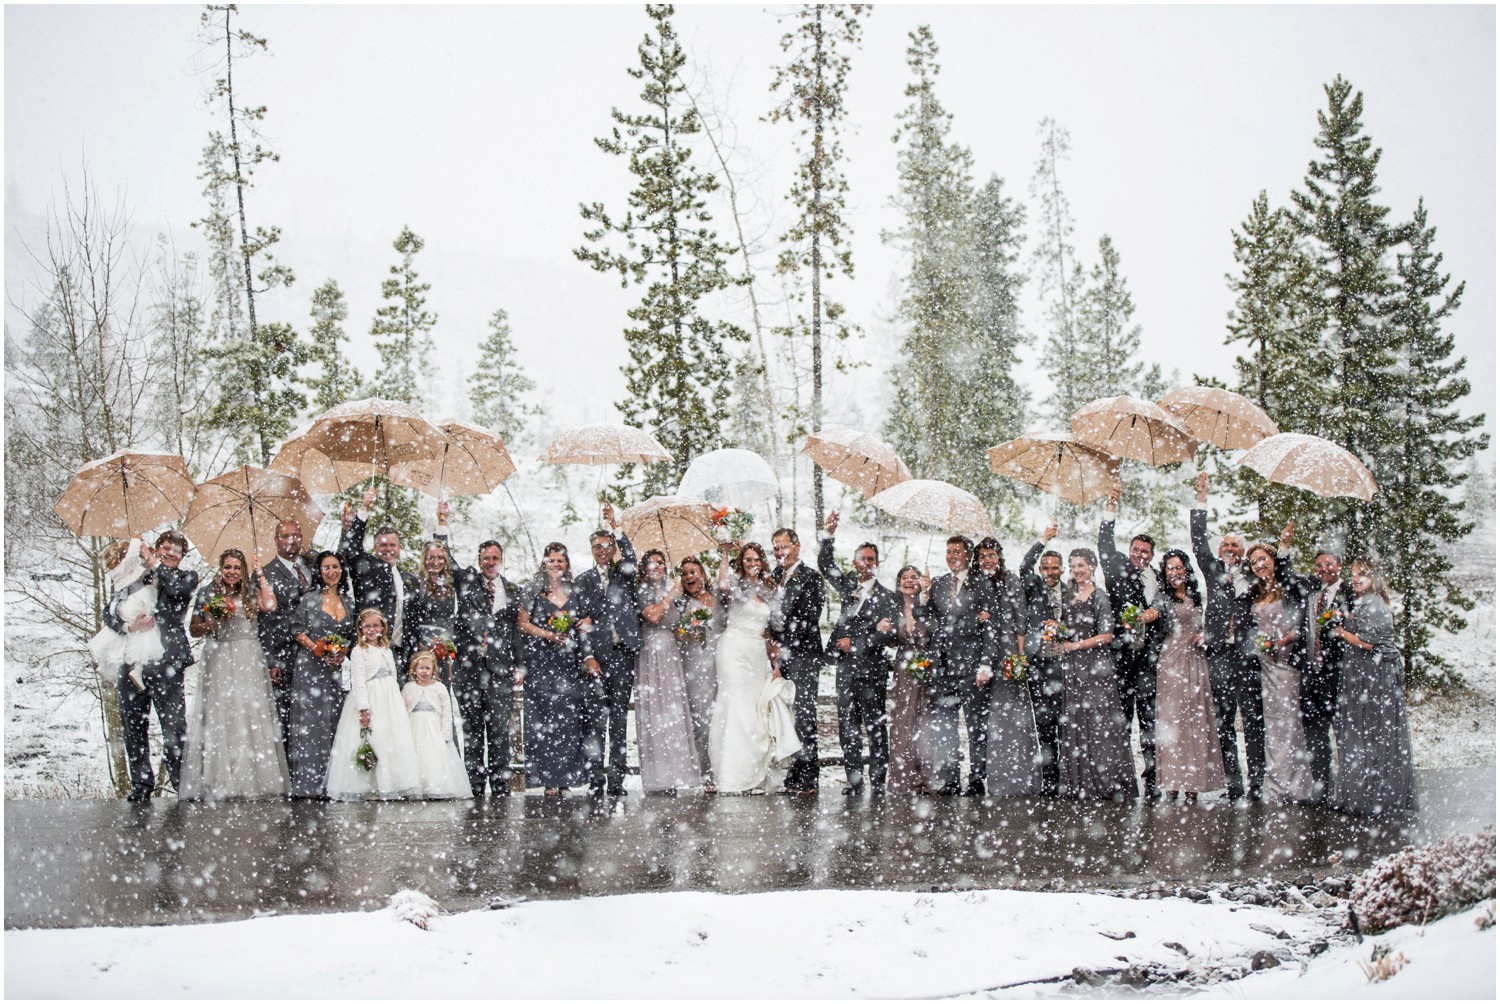 Devils-thumb-ranch-colorado-snowy-wedding-_0039.jpg